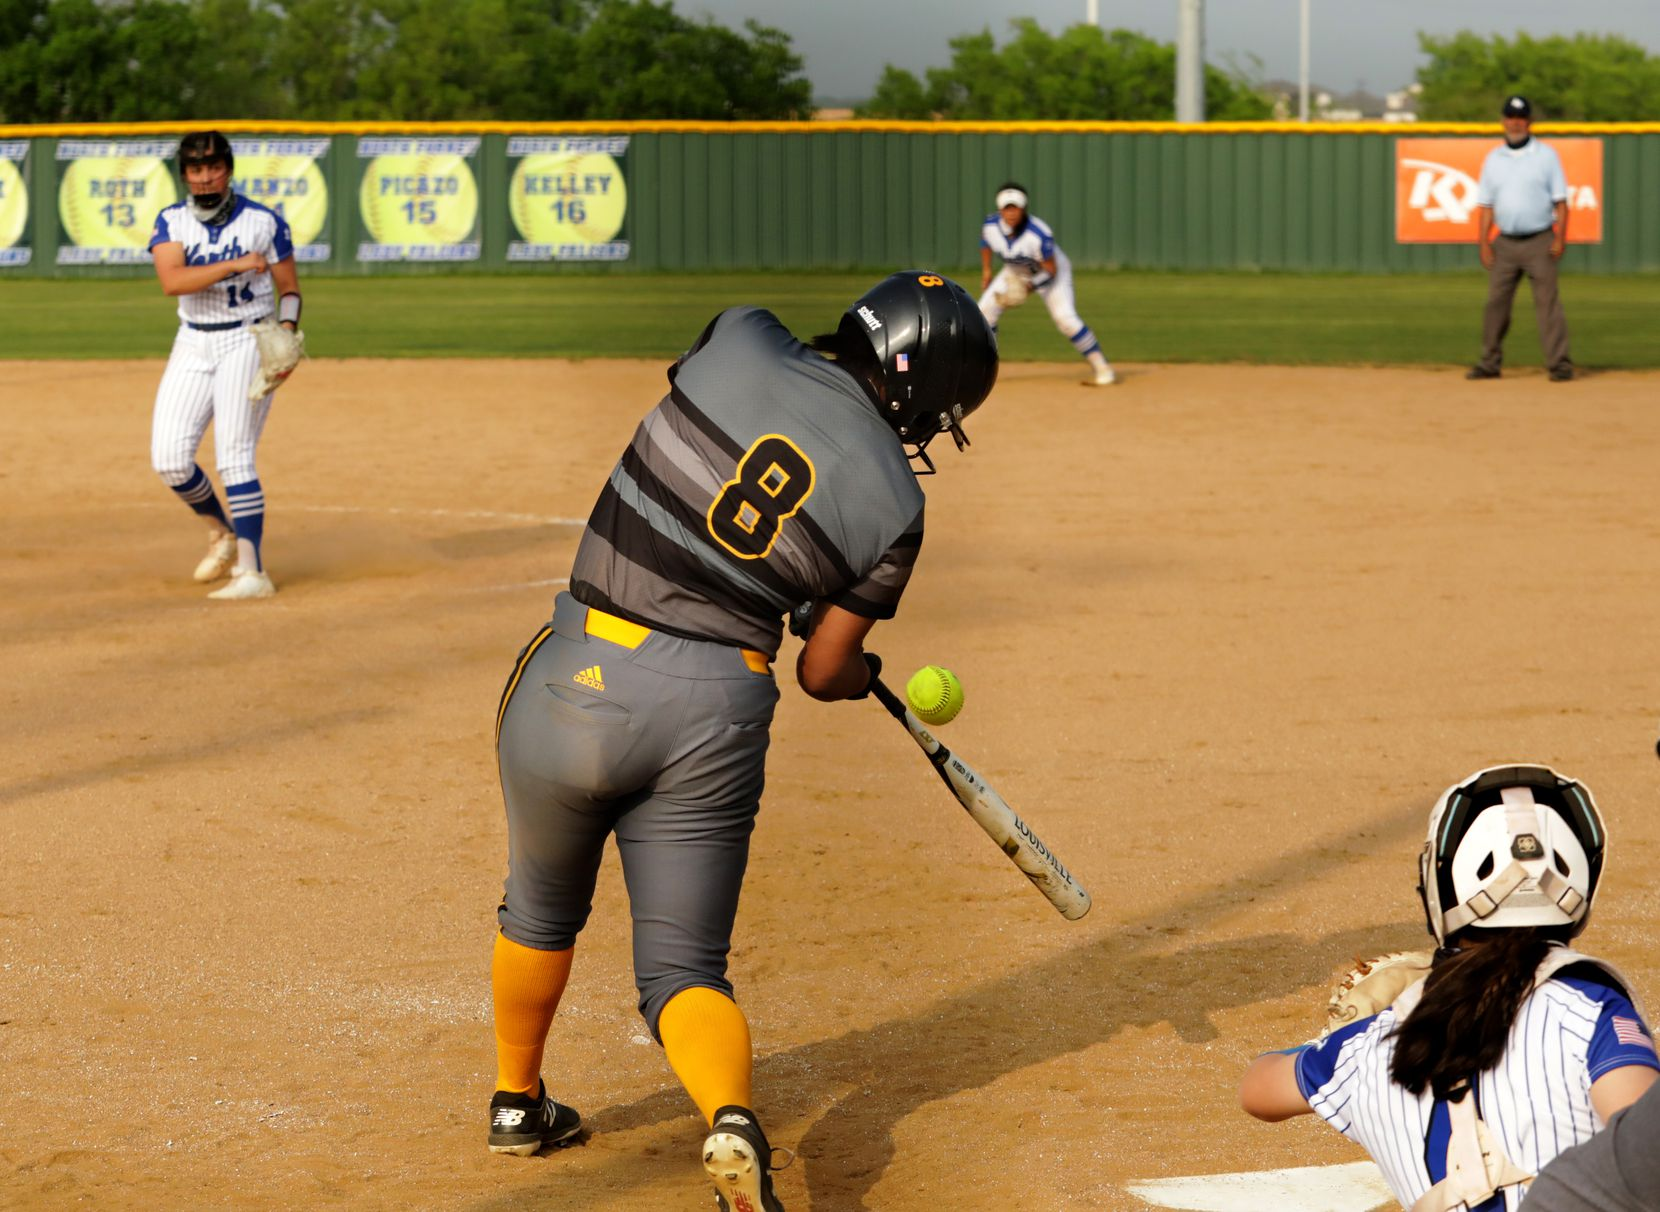 Vanessa Hollingsworth hits a homerun during a softball game between Forney at North Forney at North Forney High School in Forney, TX, on Apr. 9, 2021. (Jason Janik/Special Contributor)